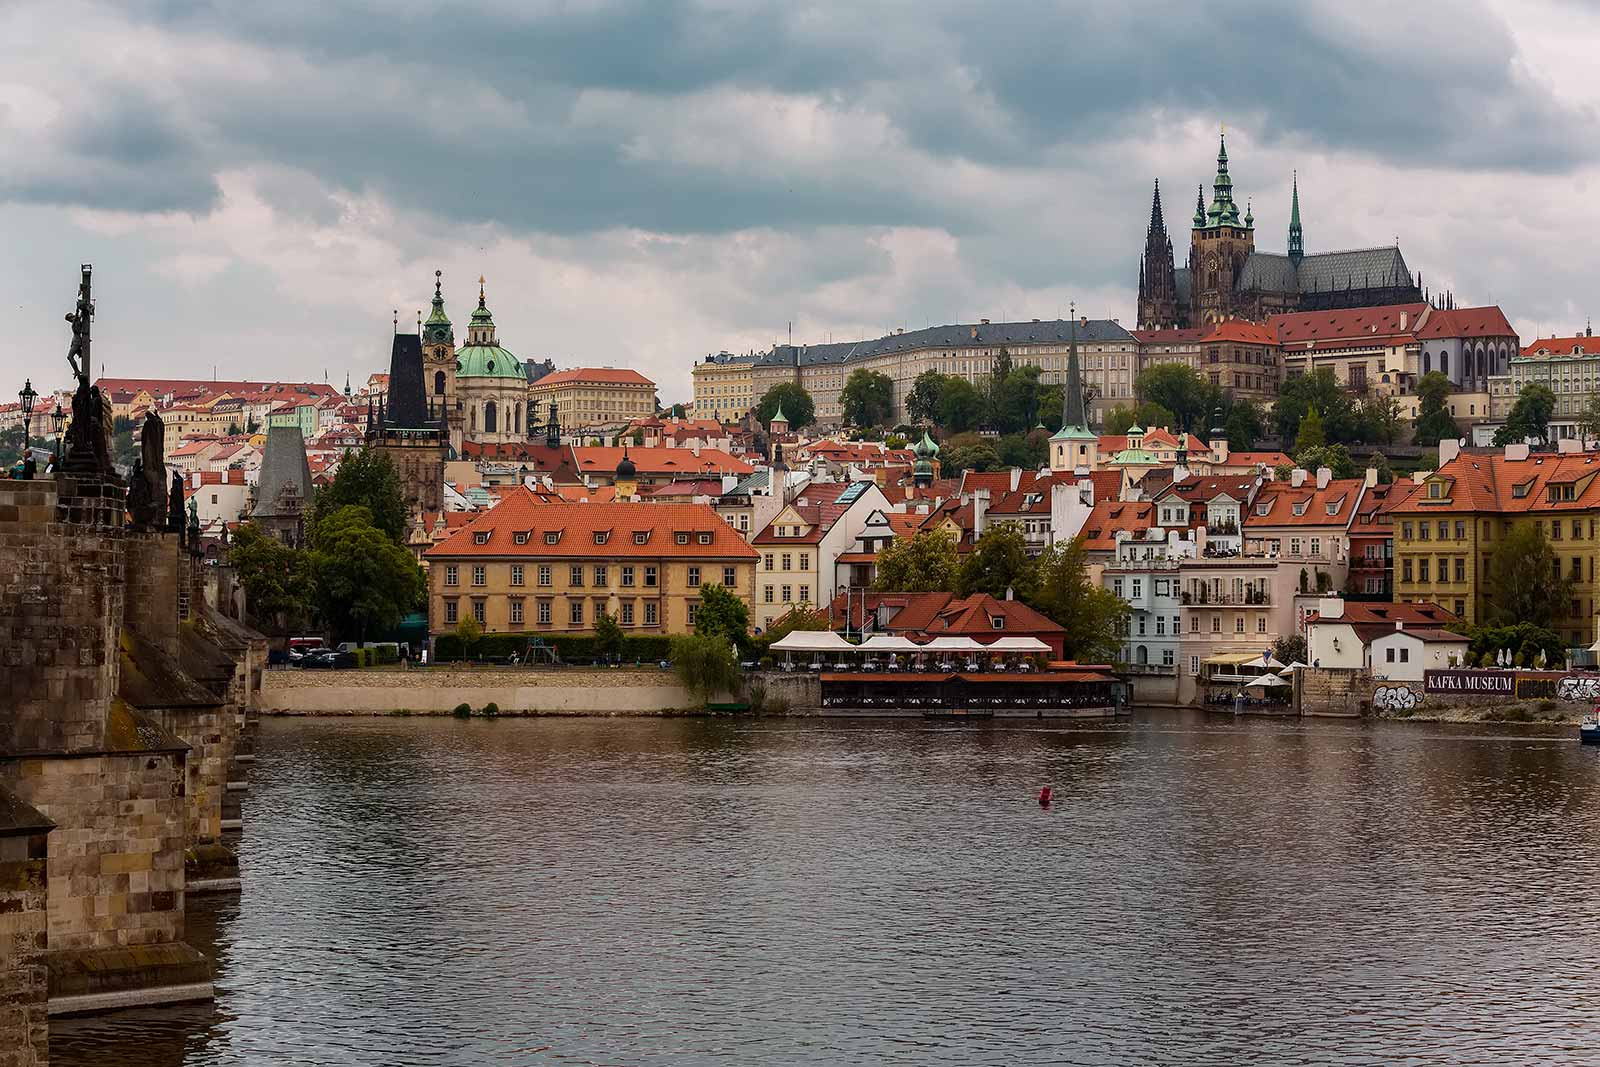 According to the Guinness Book of World Records, Prague Castle is the largest coherent castle complex in the world, with an area of almost 70,000 m². It's also a UNESCO World Heritage site.